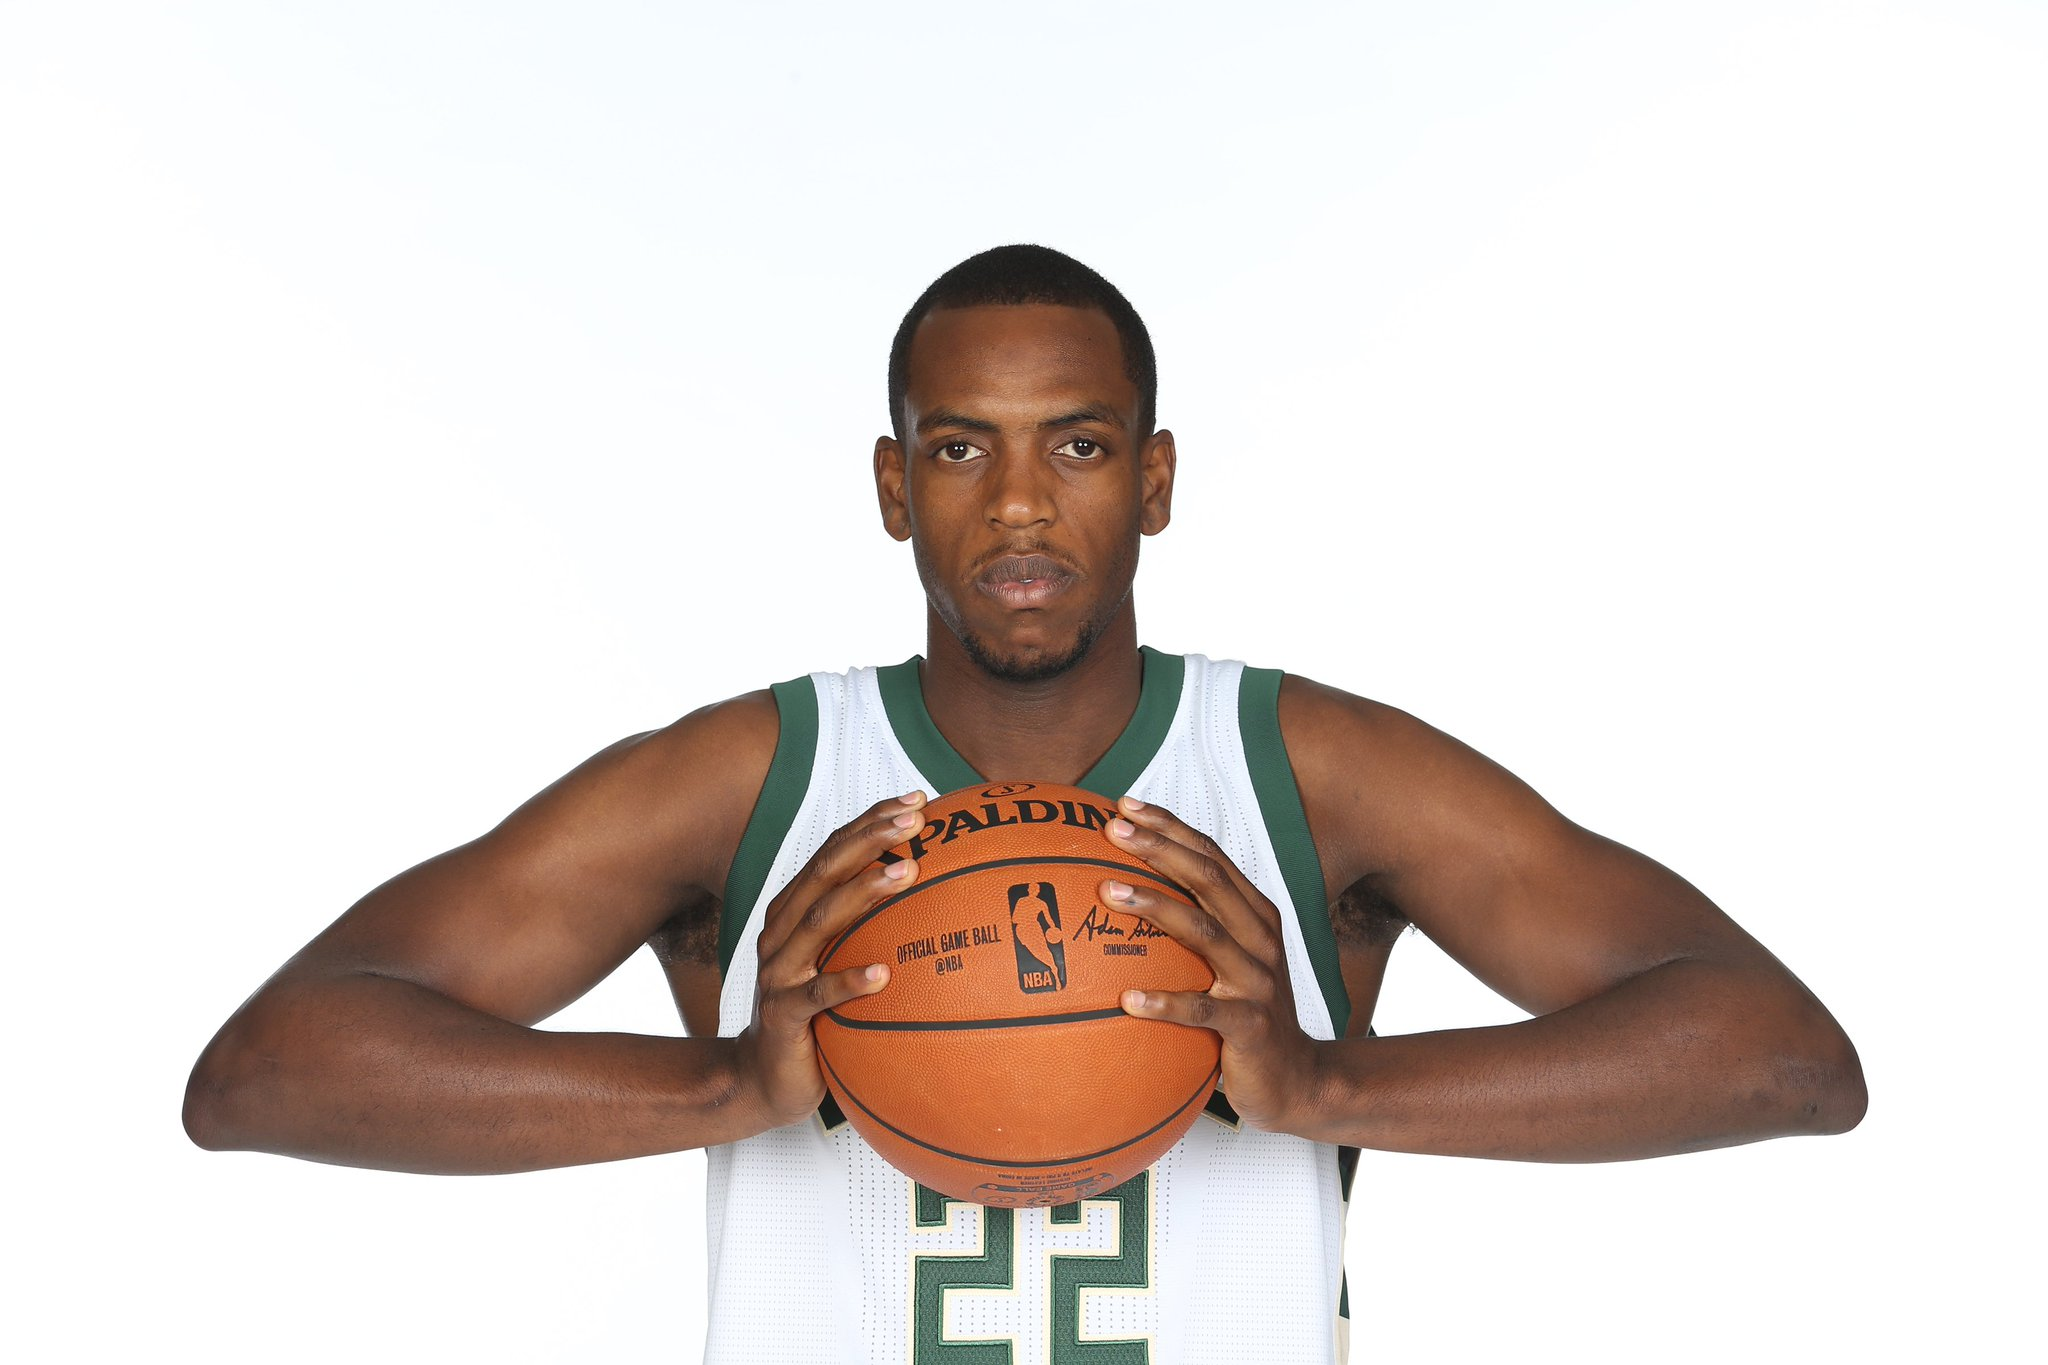 Join us in wishing @Khris22m of the @Bucks a HAPPY 26th BIRTHDAY! #NBABDAY https://t.co/SUprZbHv0I